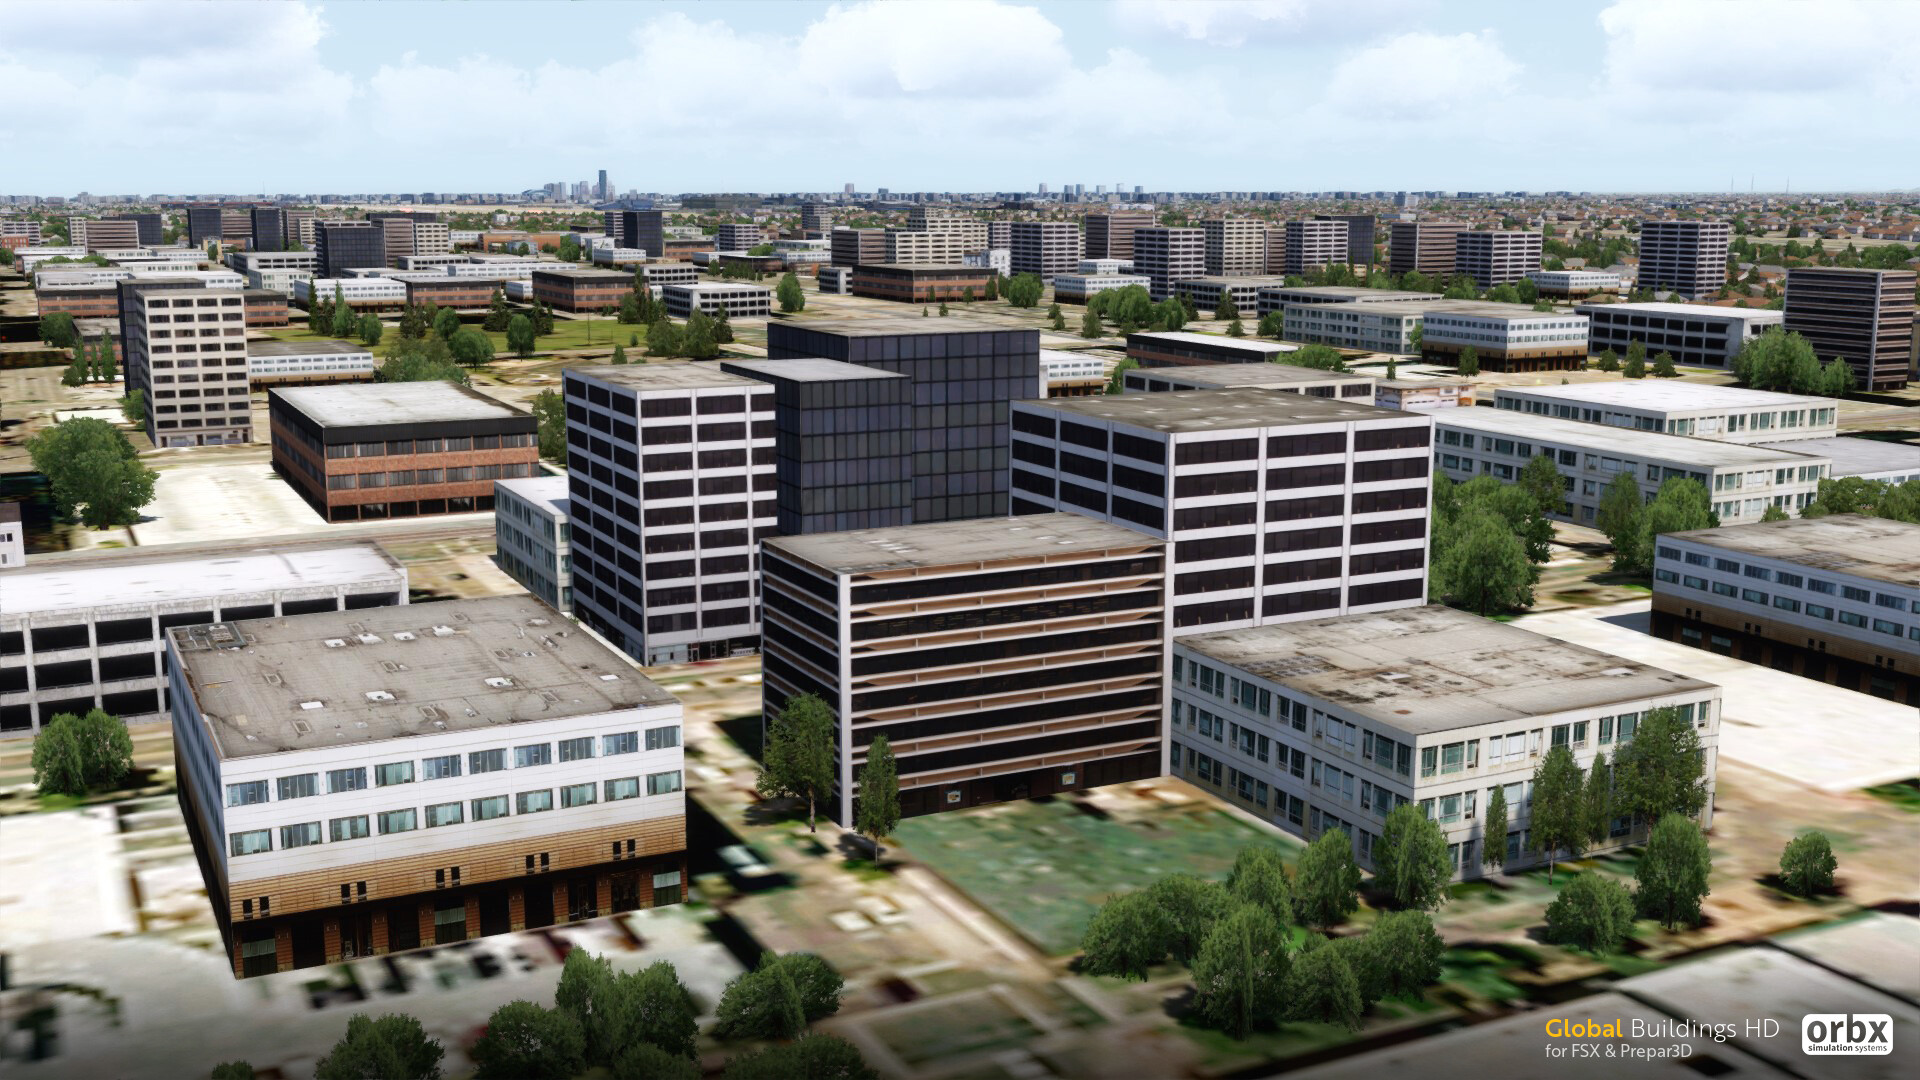 Buildings HD for FSX/P3D coming soon! - Preview Screenshots